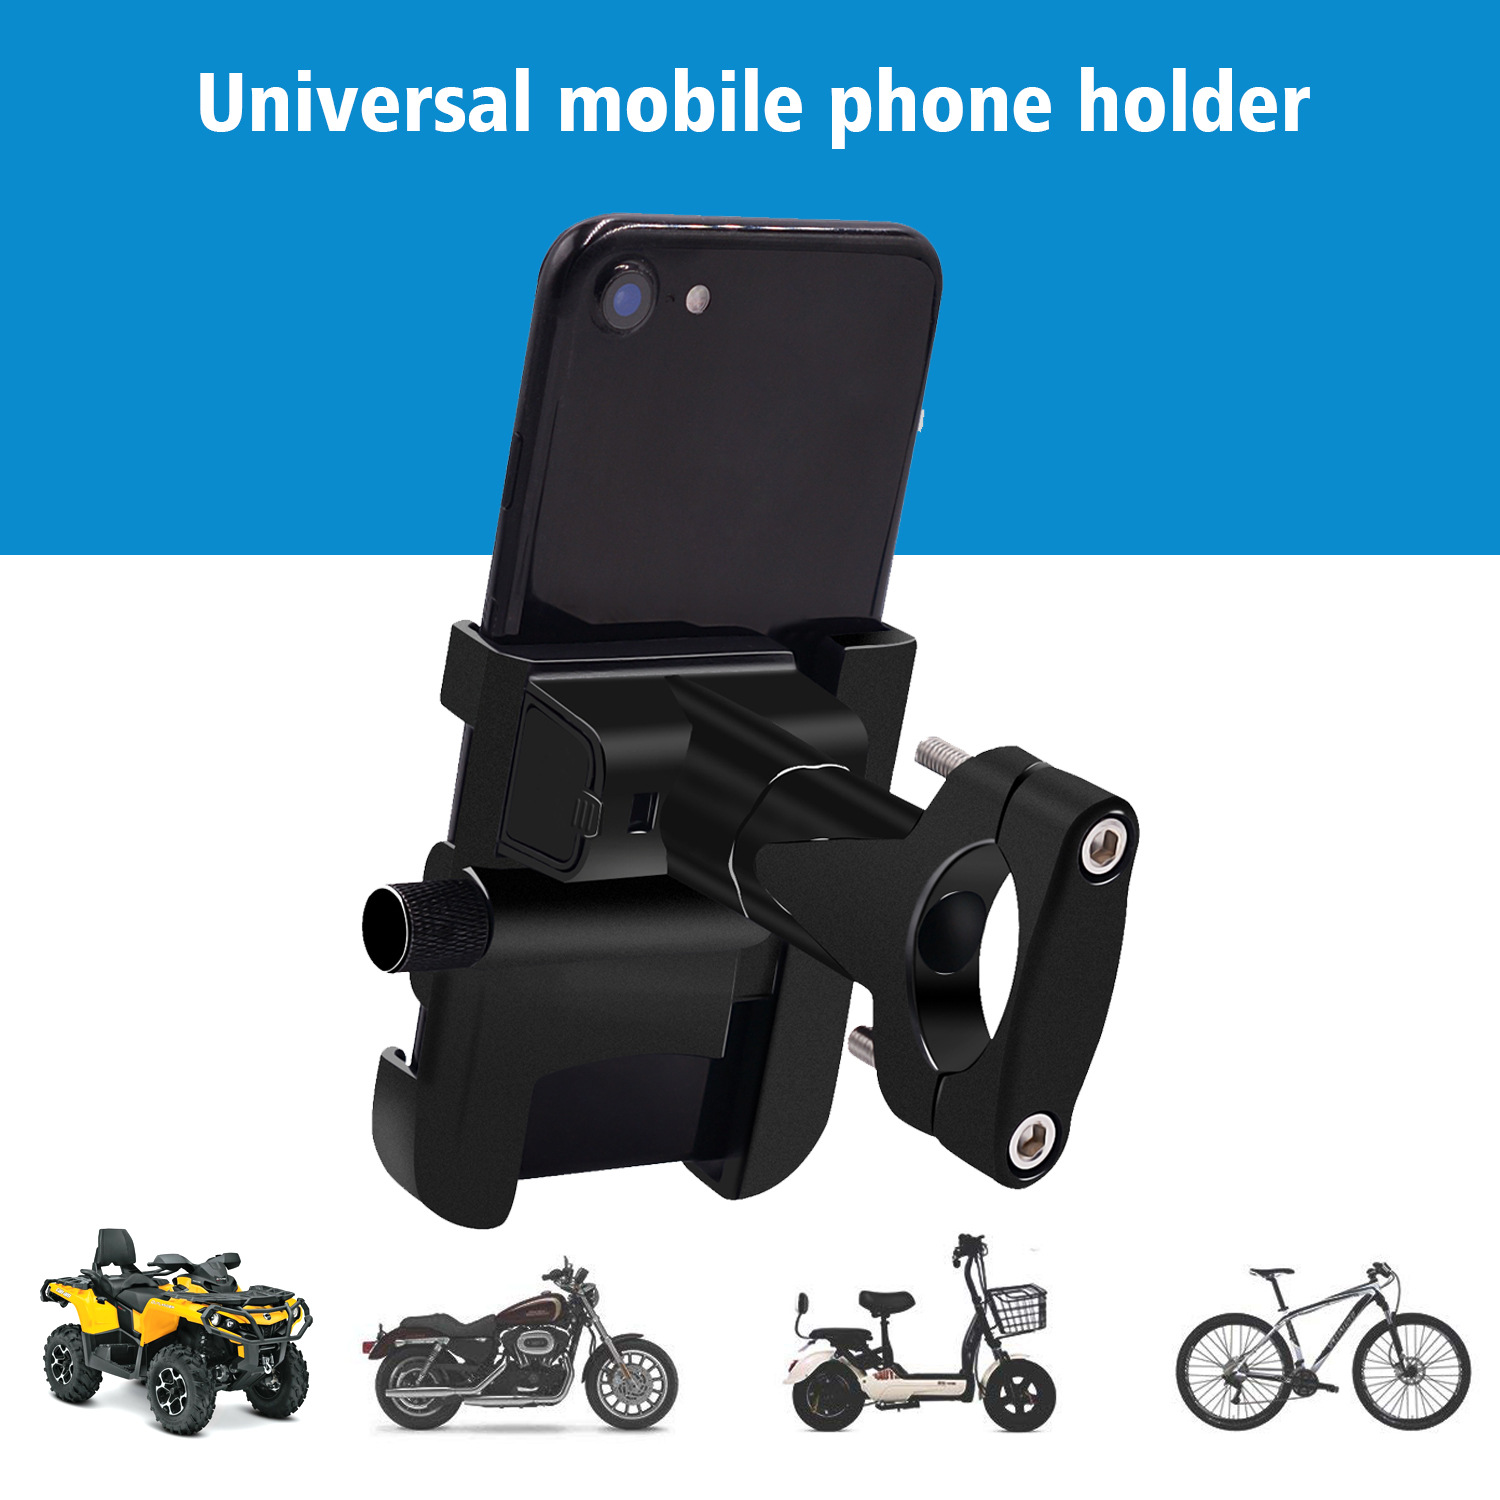 QC3.0 USB Charger 4-7inch Fast Charging Aluminum Alloy Motorcycle Phone Mount Holder Bracket